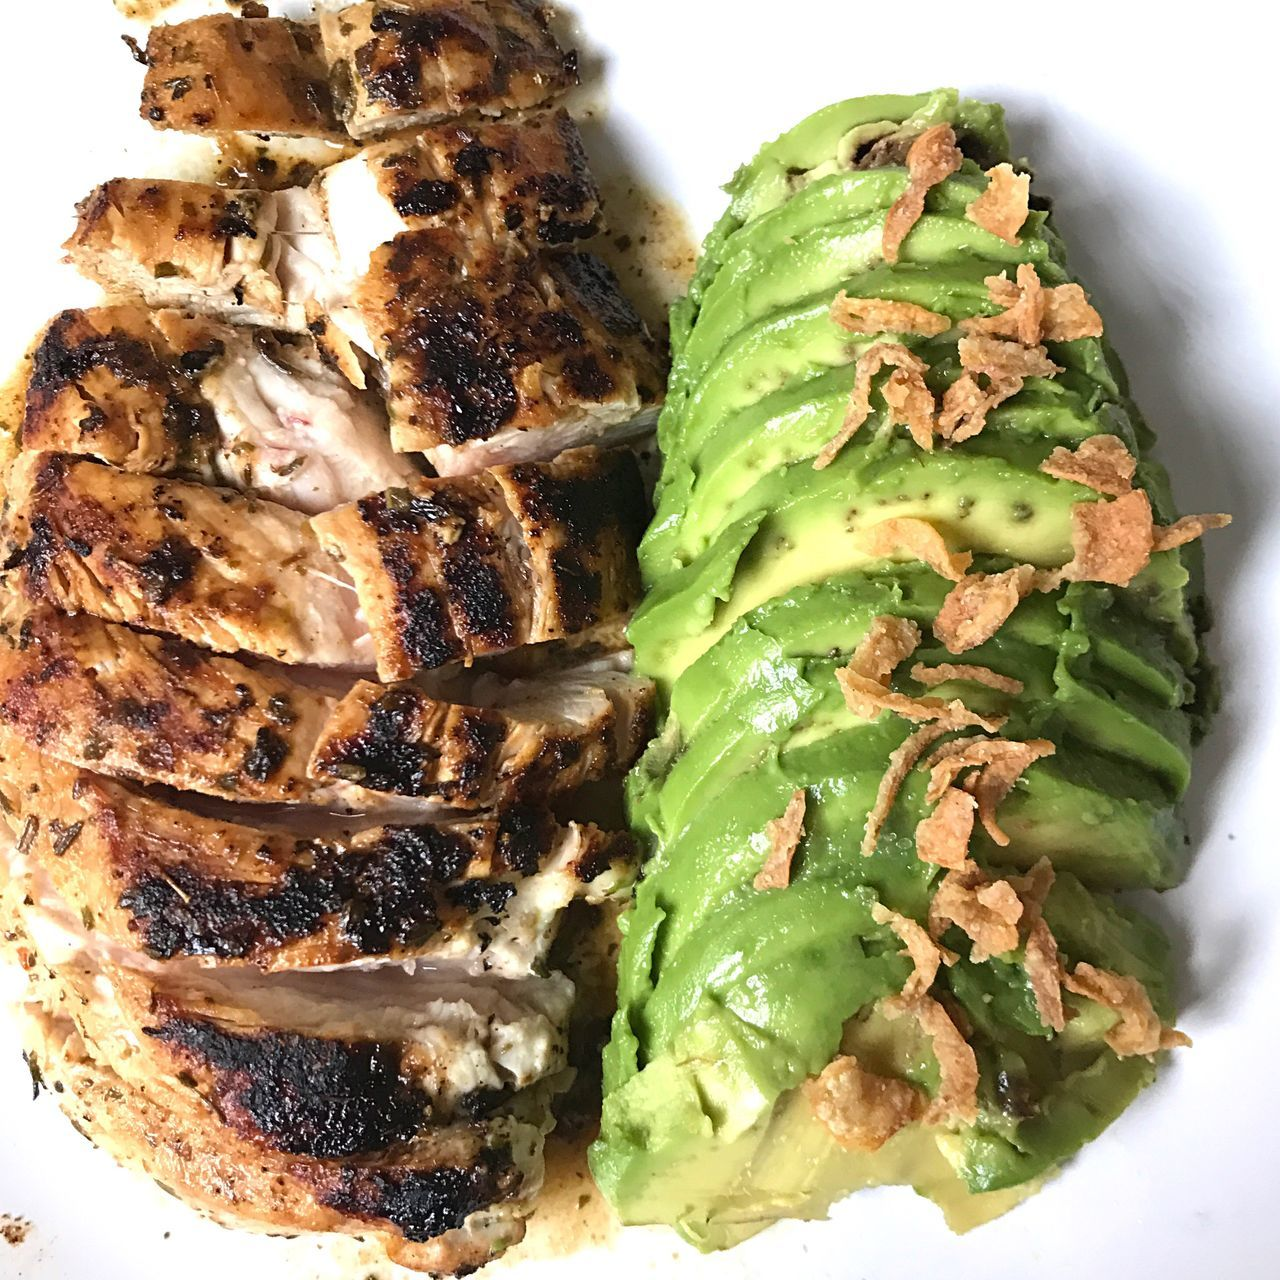 Healthy eating Food Freshness Ready-to-eat Green Color Day Avocado Chicken Healthy Eating